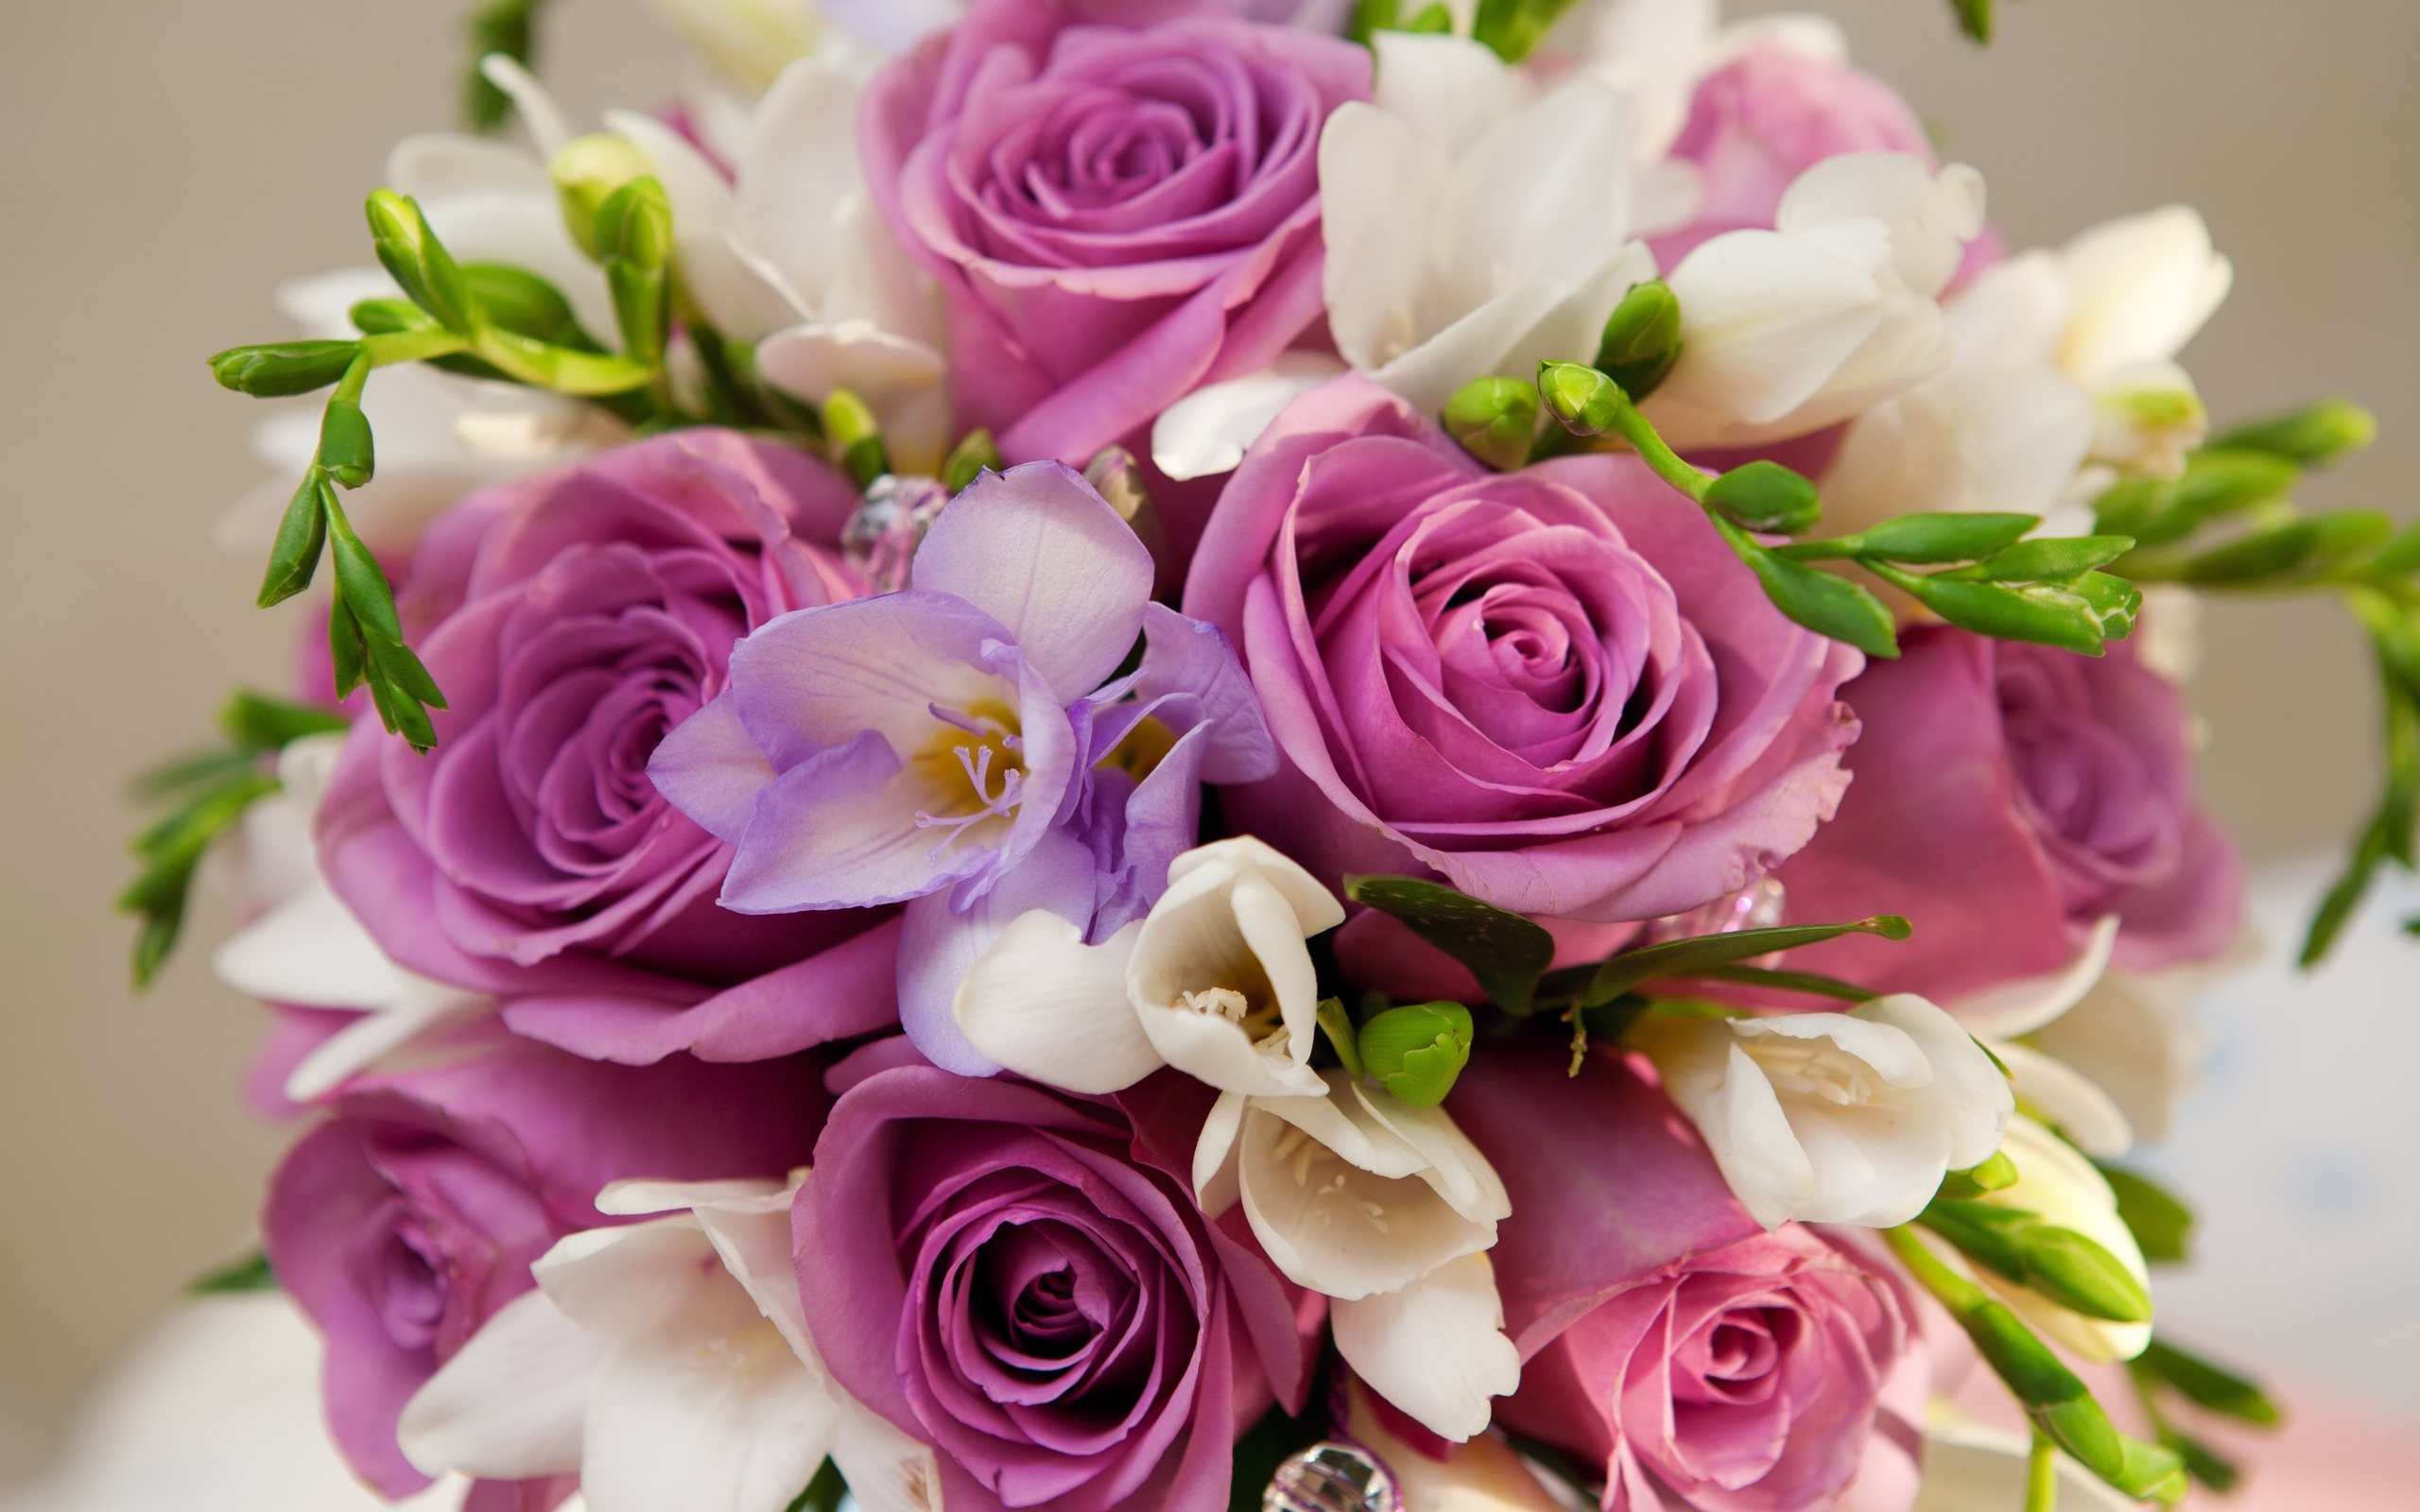 bouquet of flowers images.